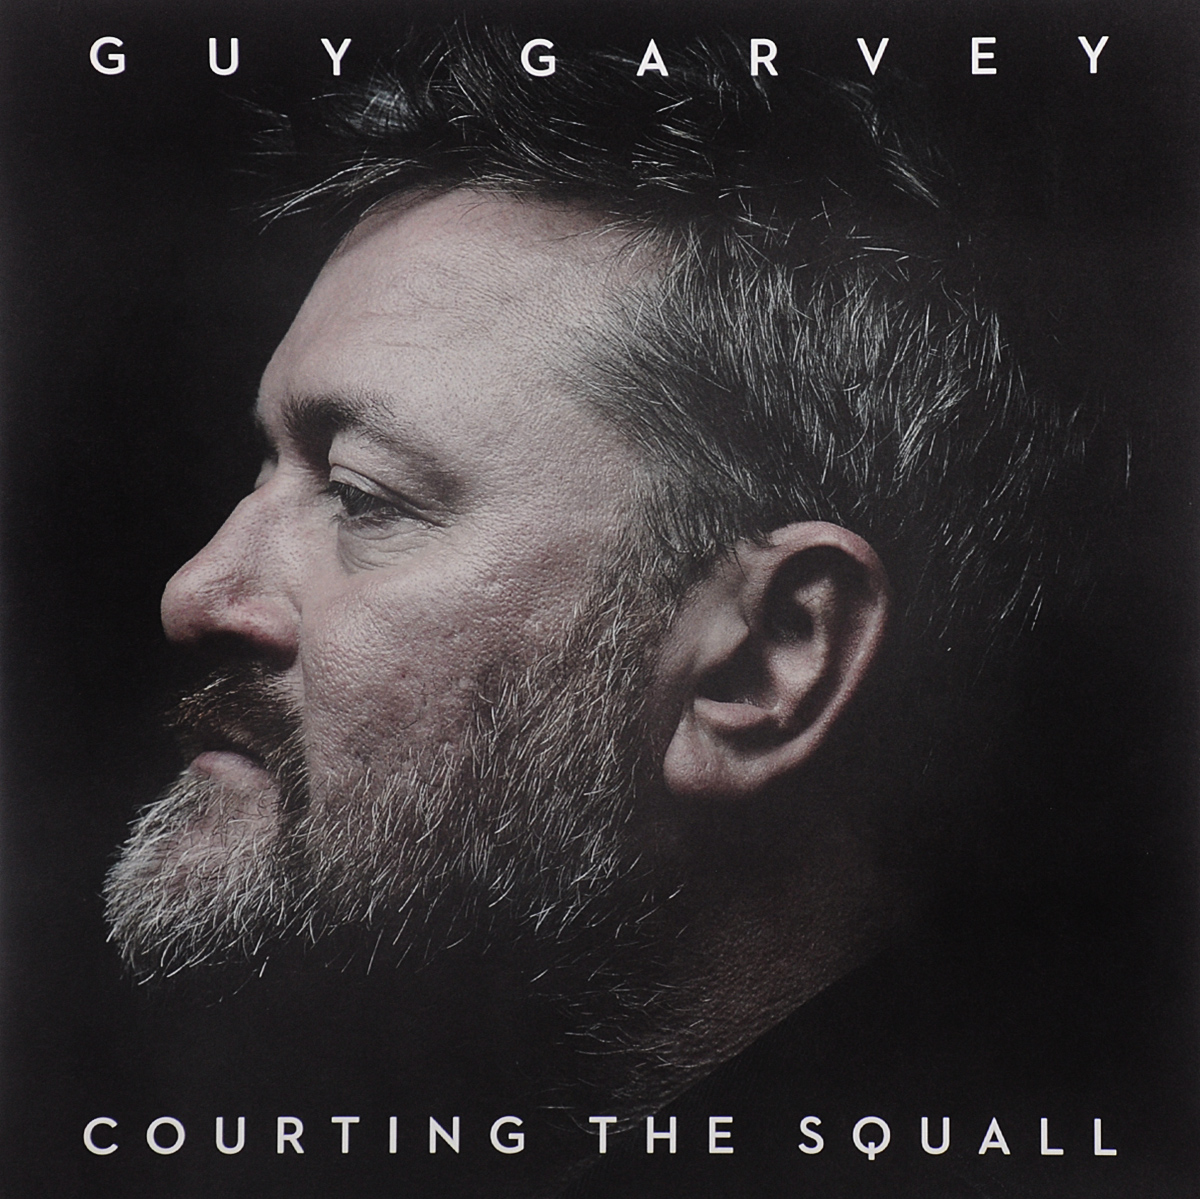 Гай Гэрви Guy Garvey. Courting The Squall (LP) joseph thomas le fanu guy deverell 1 гай деверелл 1 на английском языке